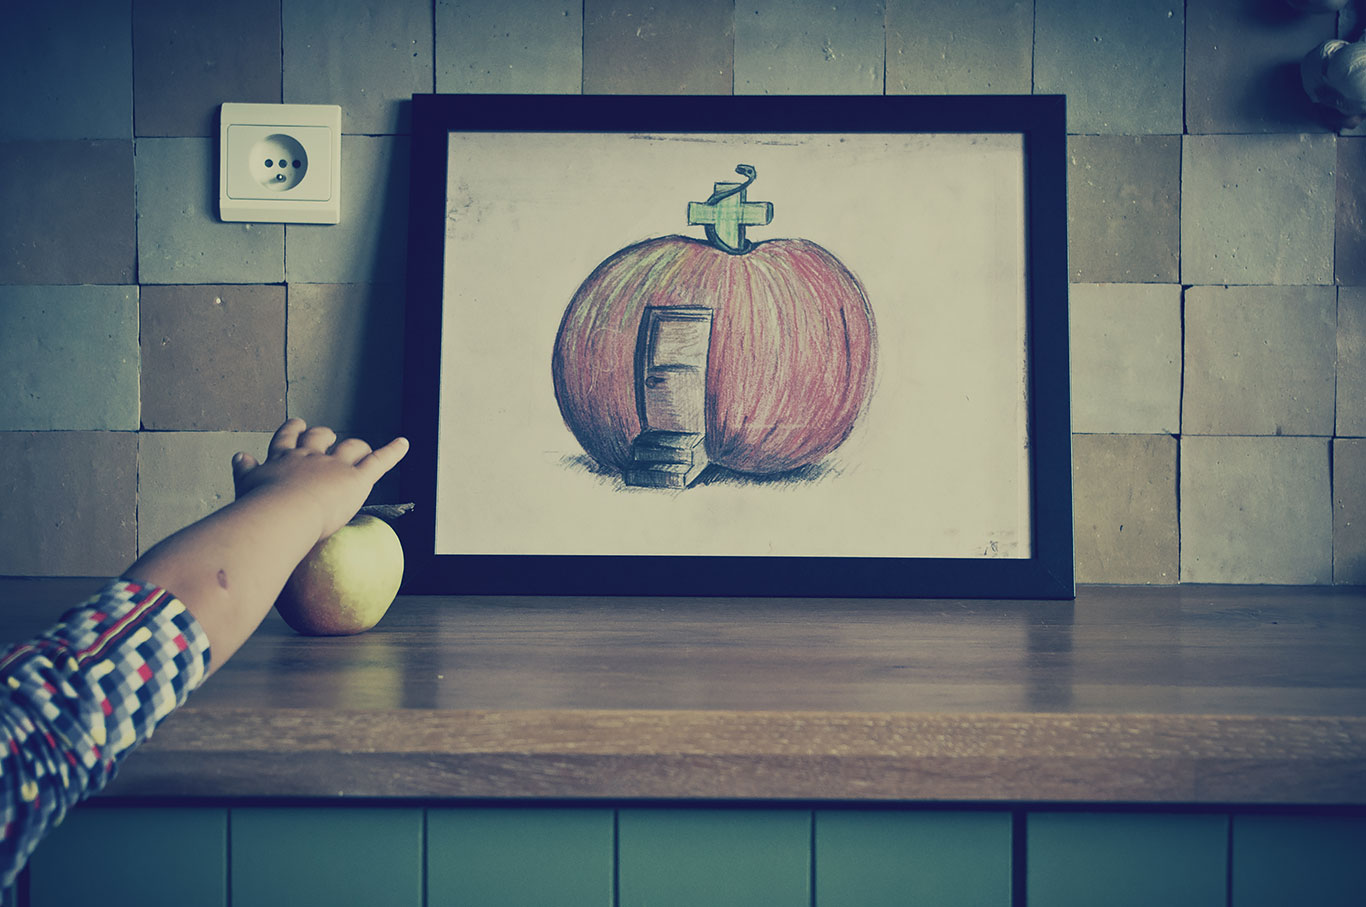 Appelteek, tekening uit de reeks &#039;zo&#039;n woordenboek!&#039;